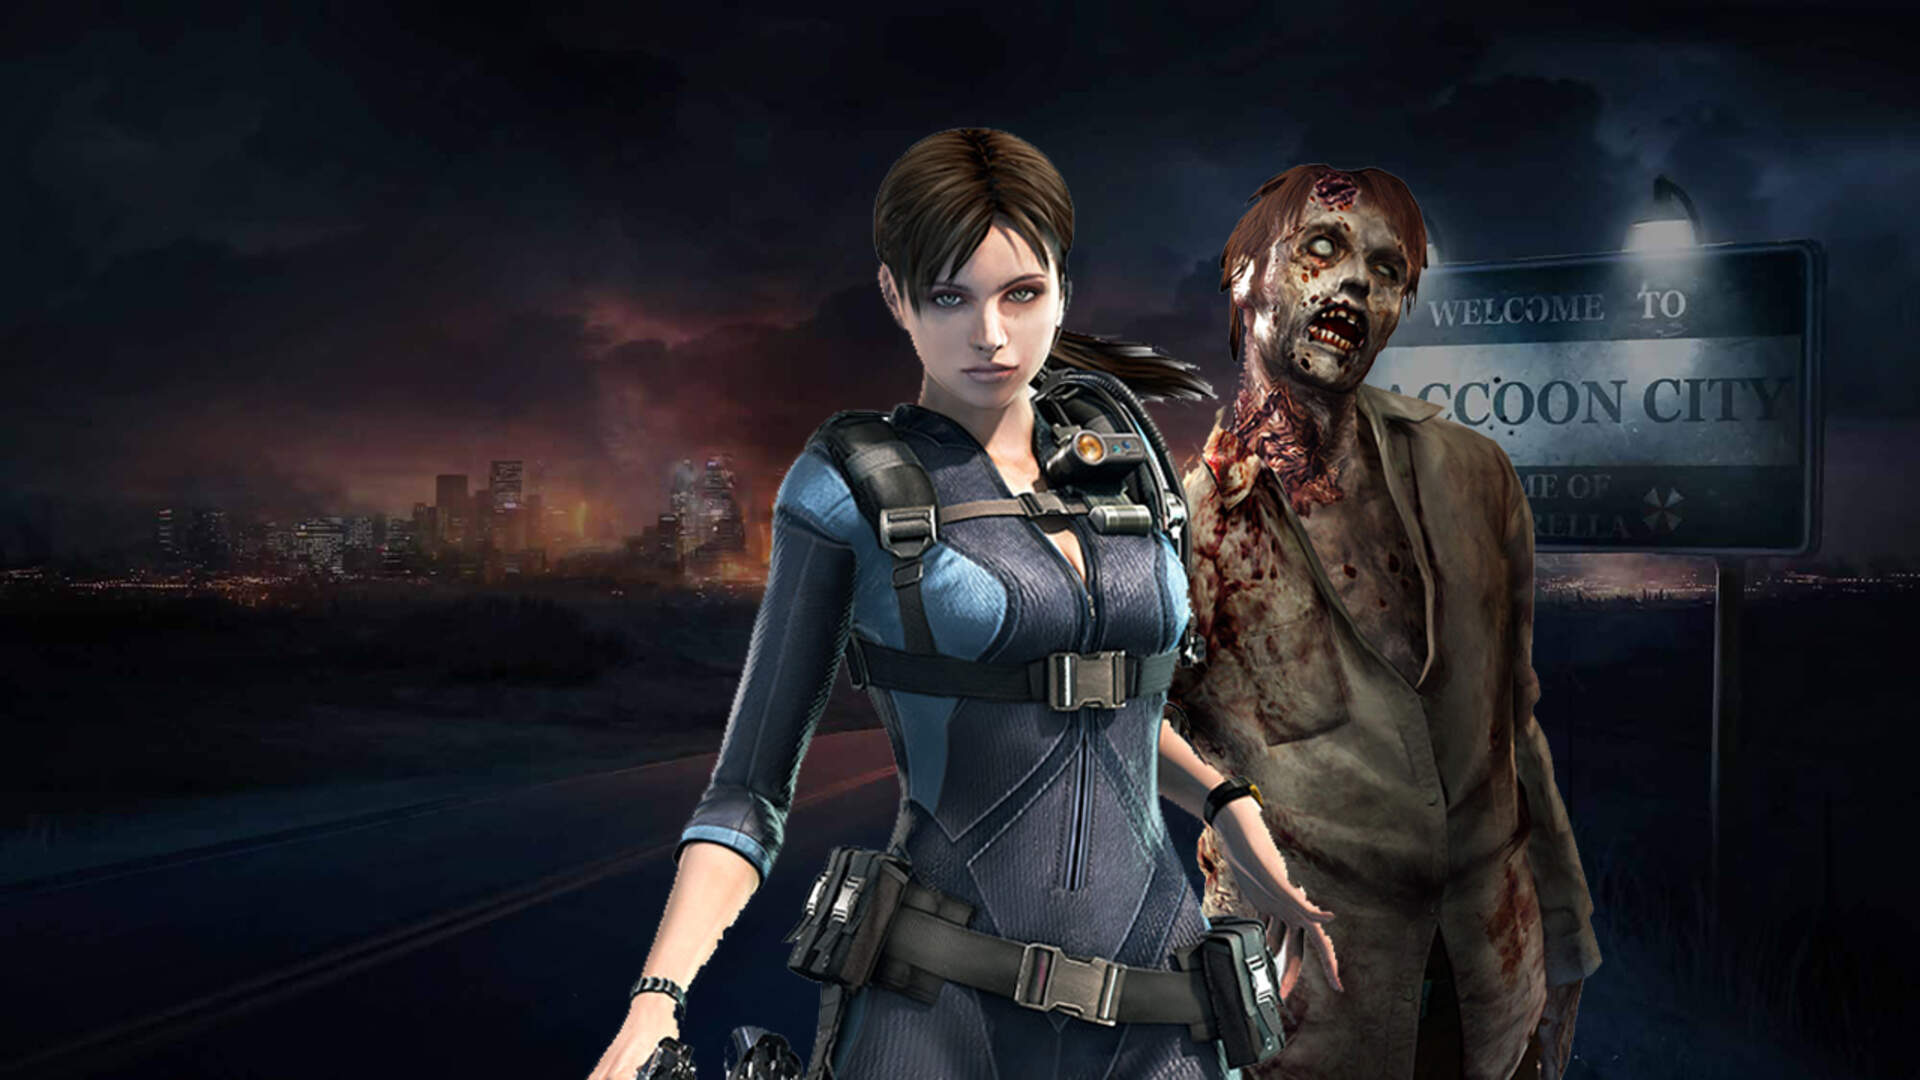 The Best Resident Evil Games Ranked From Worst to Best